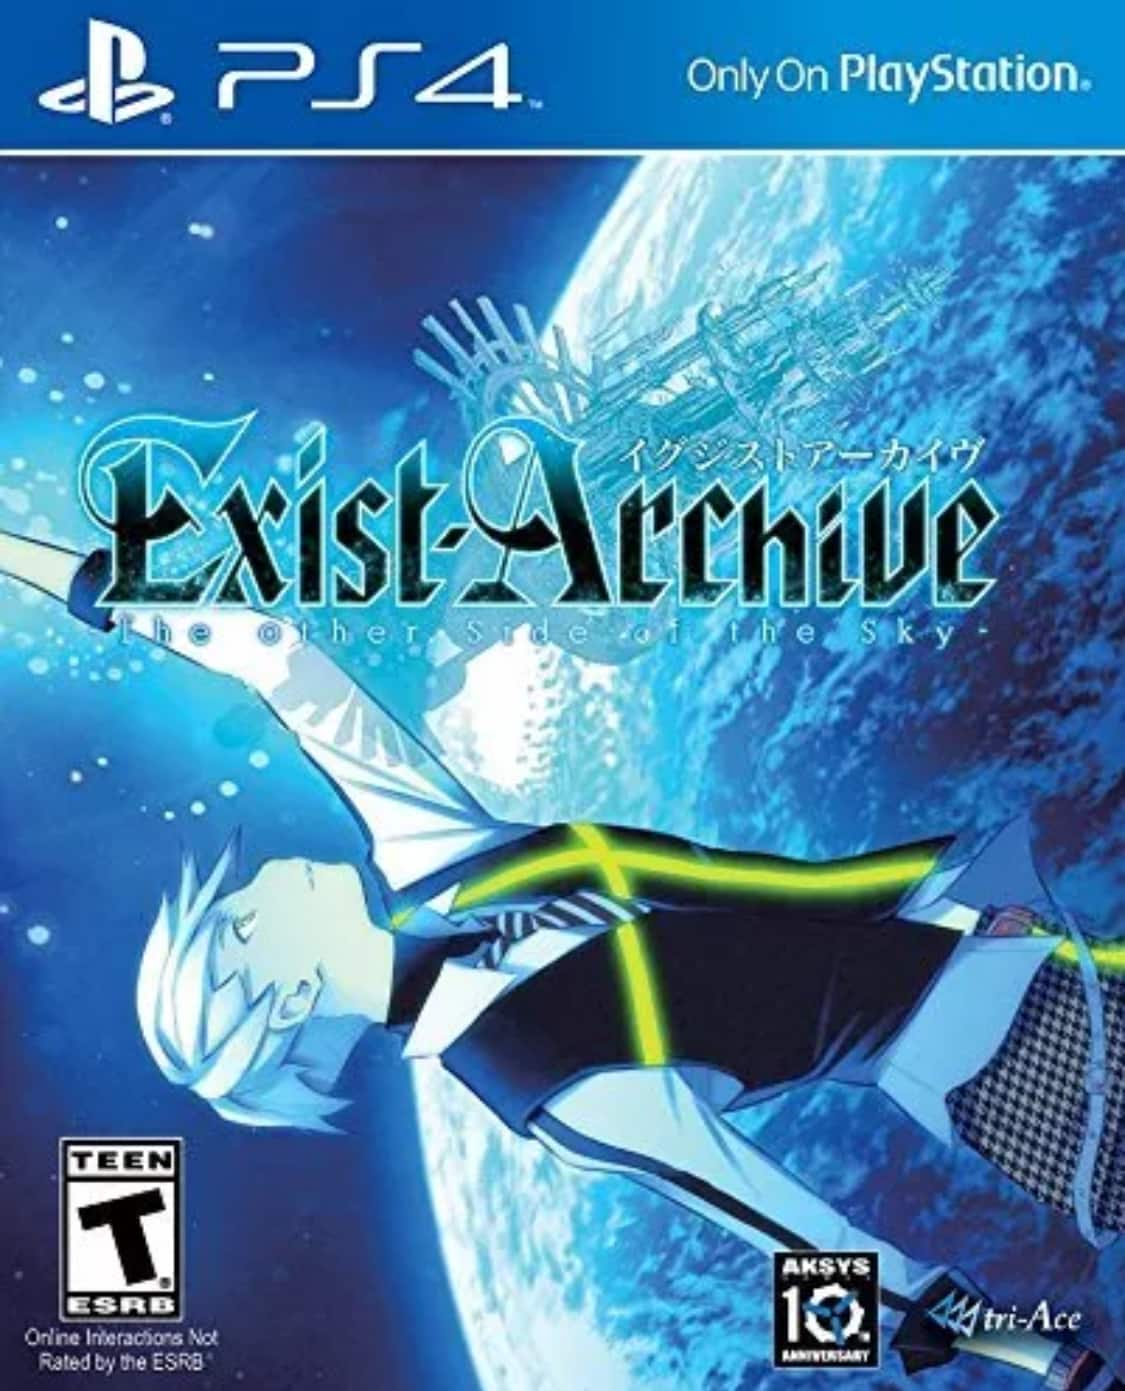 Exist Archive: The Other Side of the Sky - PlayStation 4 and PlayStation Vita $15.8